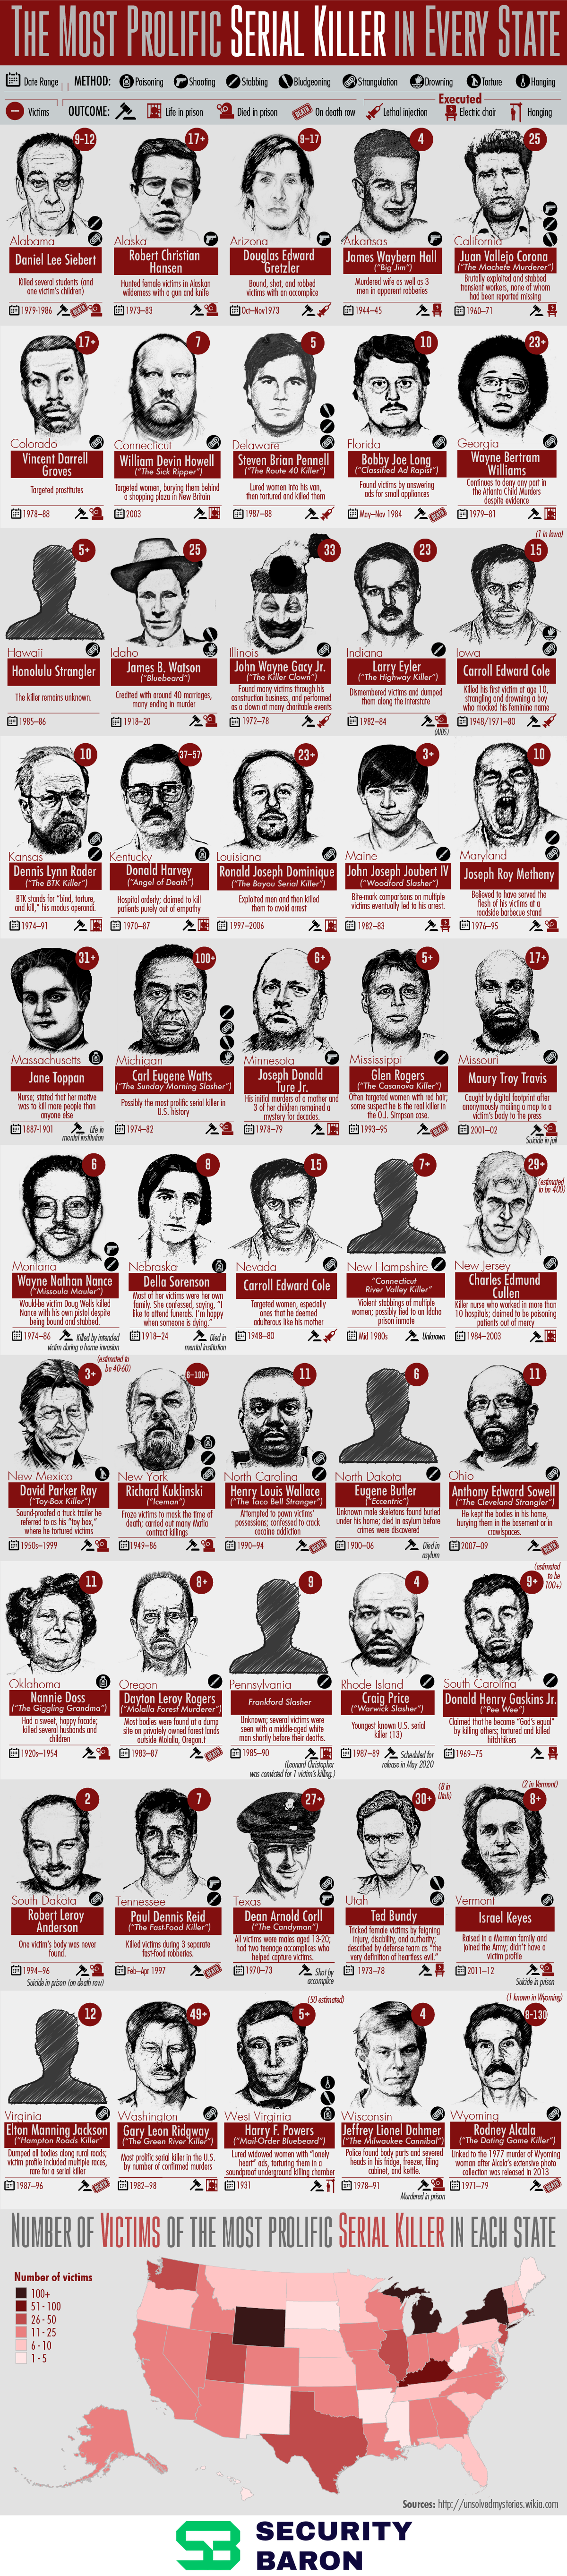 most-prolific-serial-killer-every-state